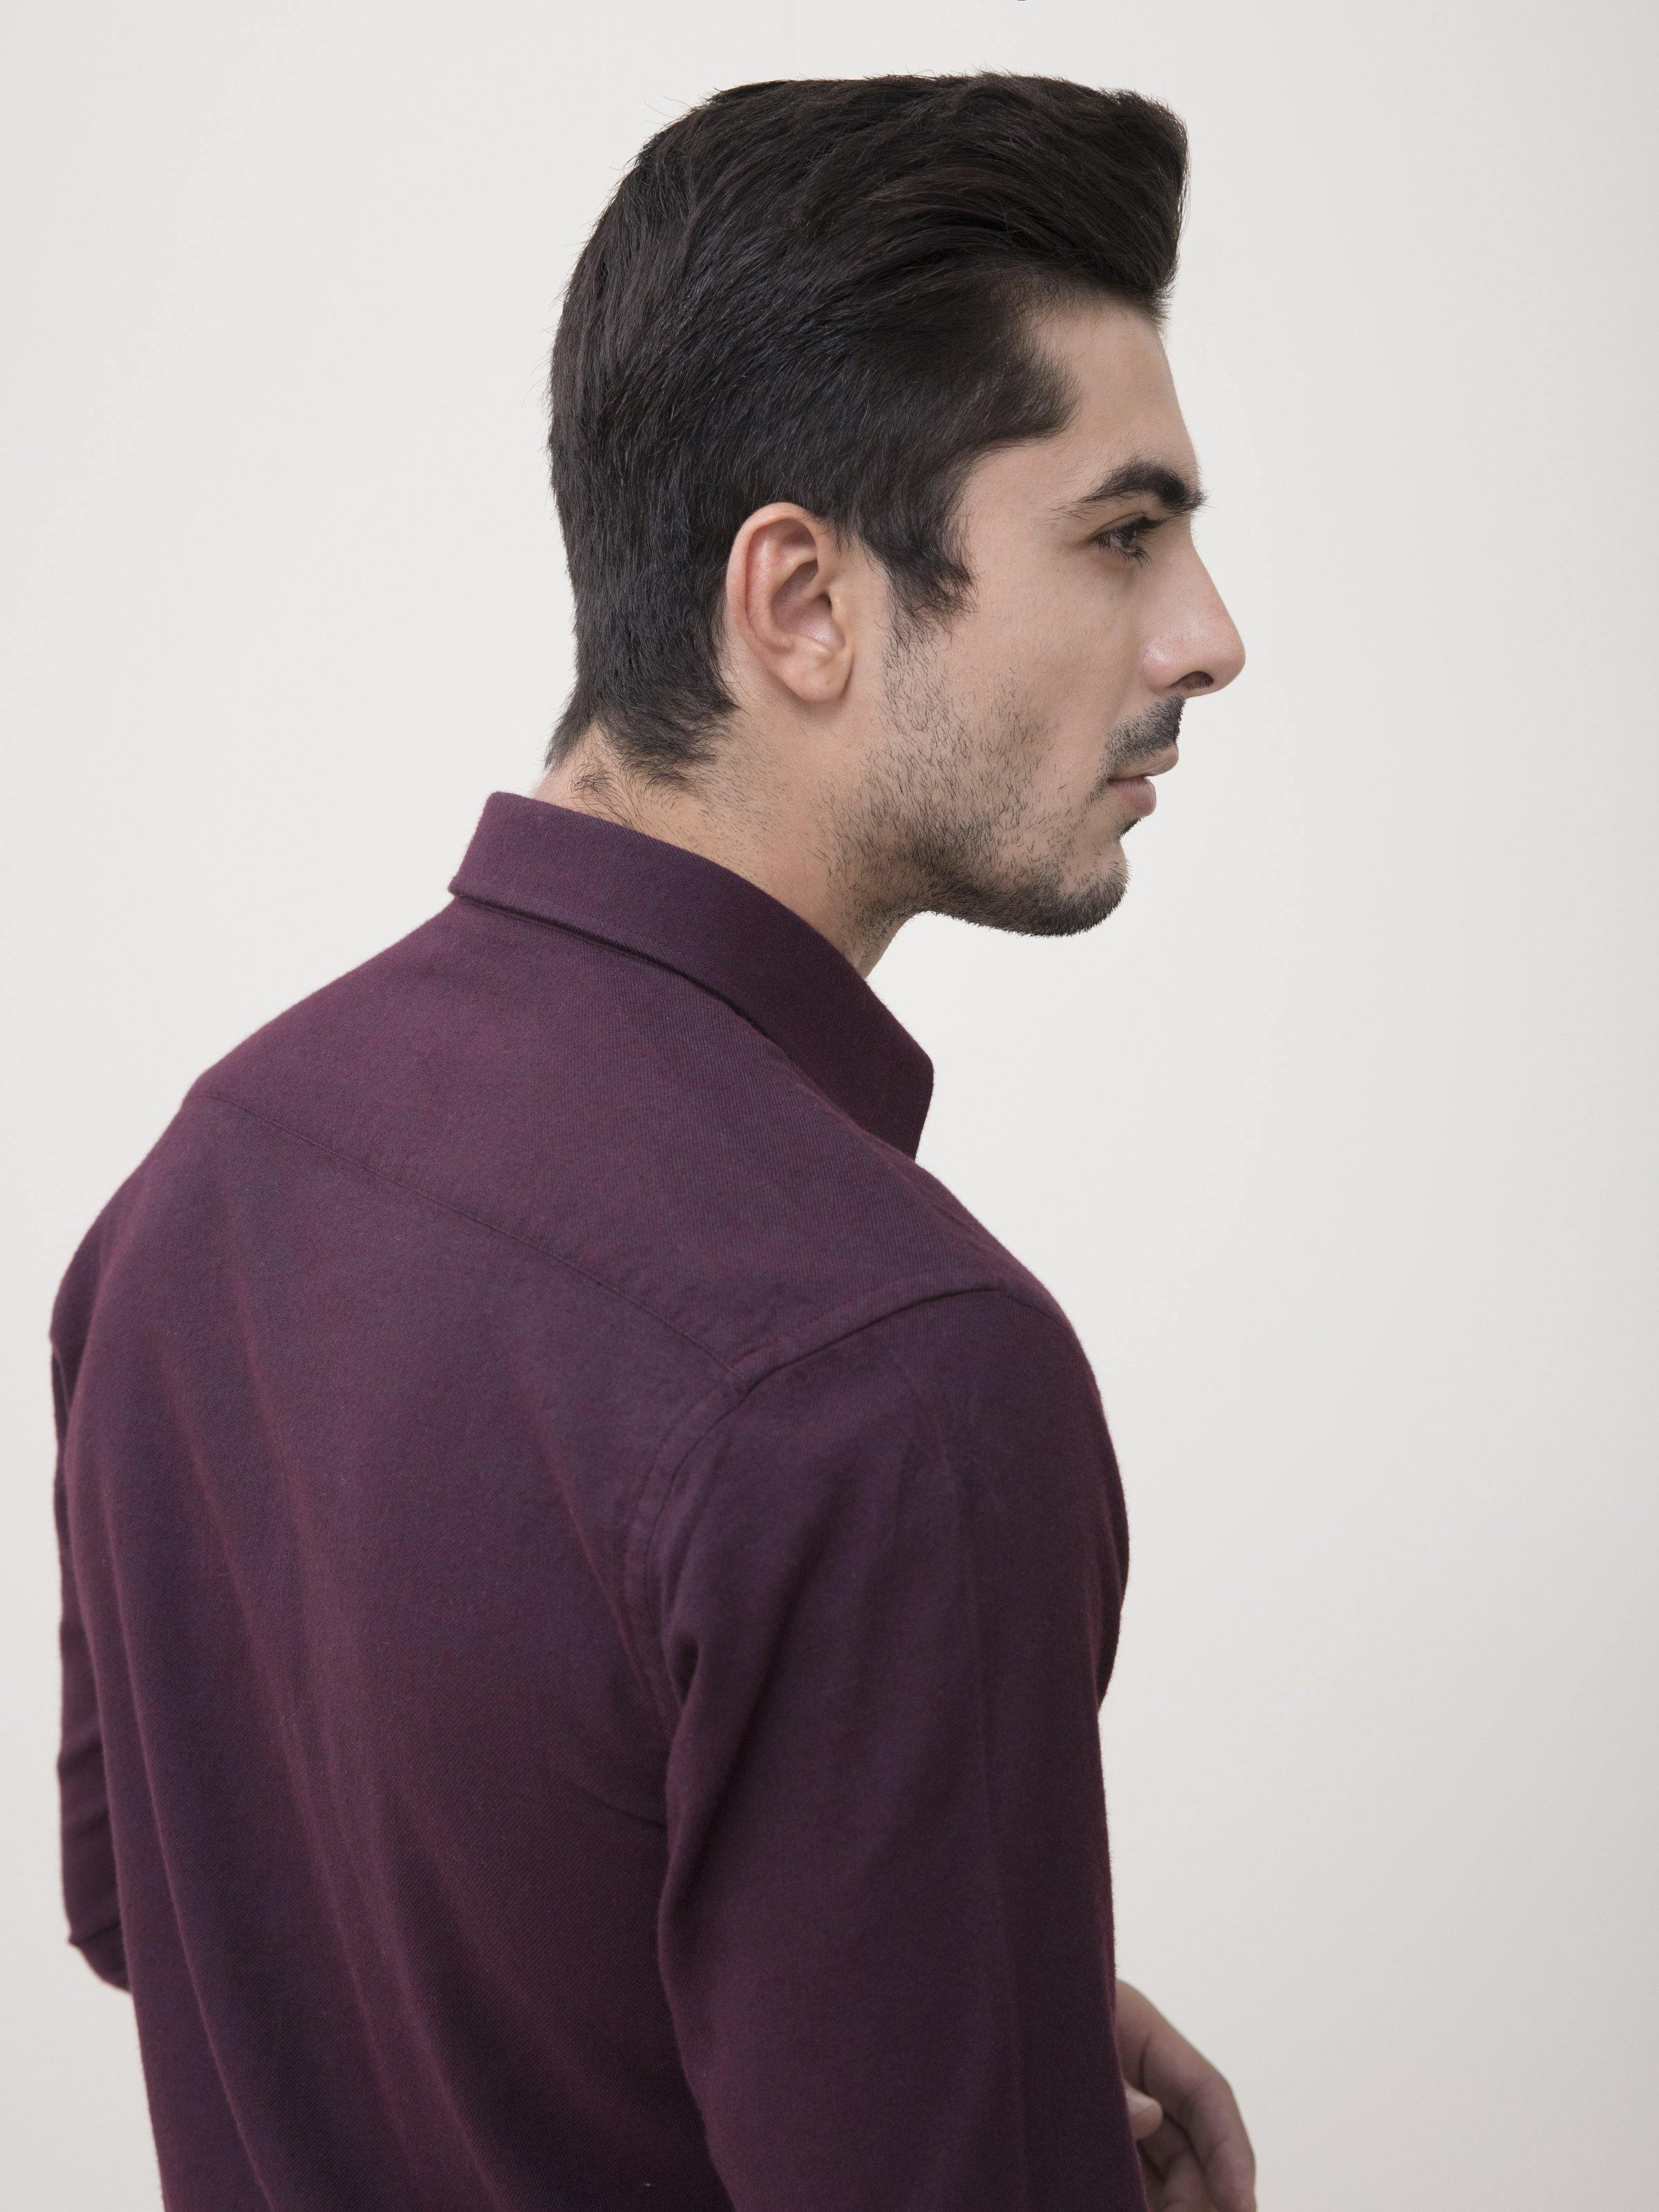 SMART SHIRT MAROON - Charcoal Clothing - N-SMART SHIRTS -